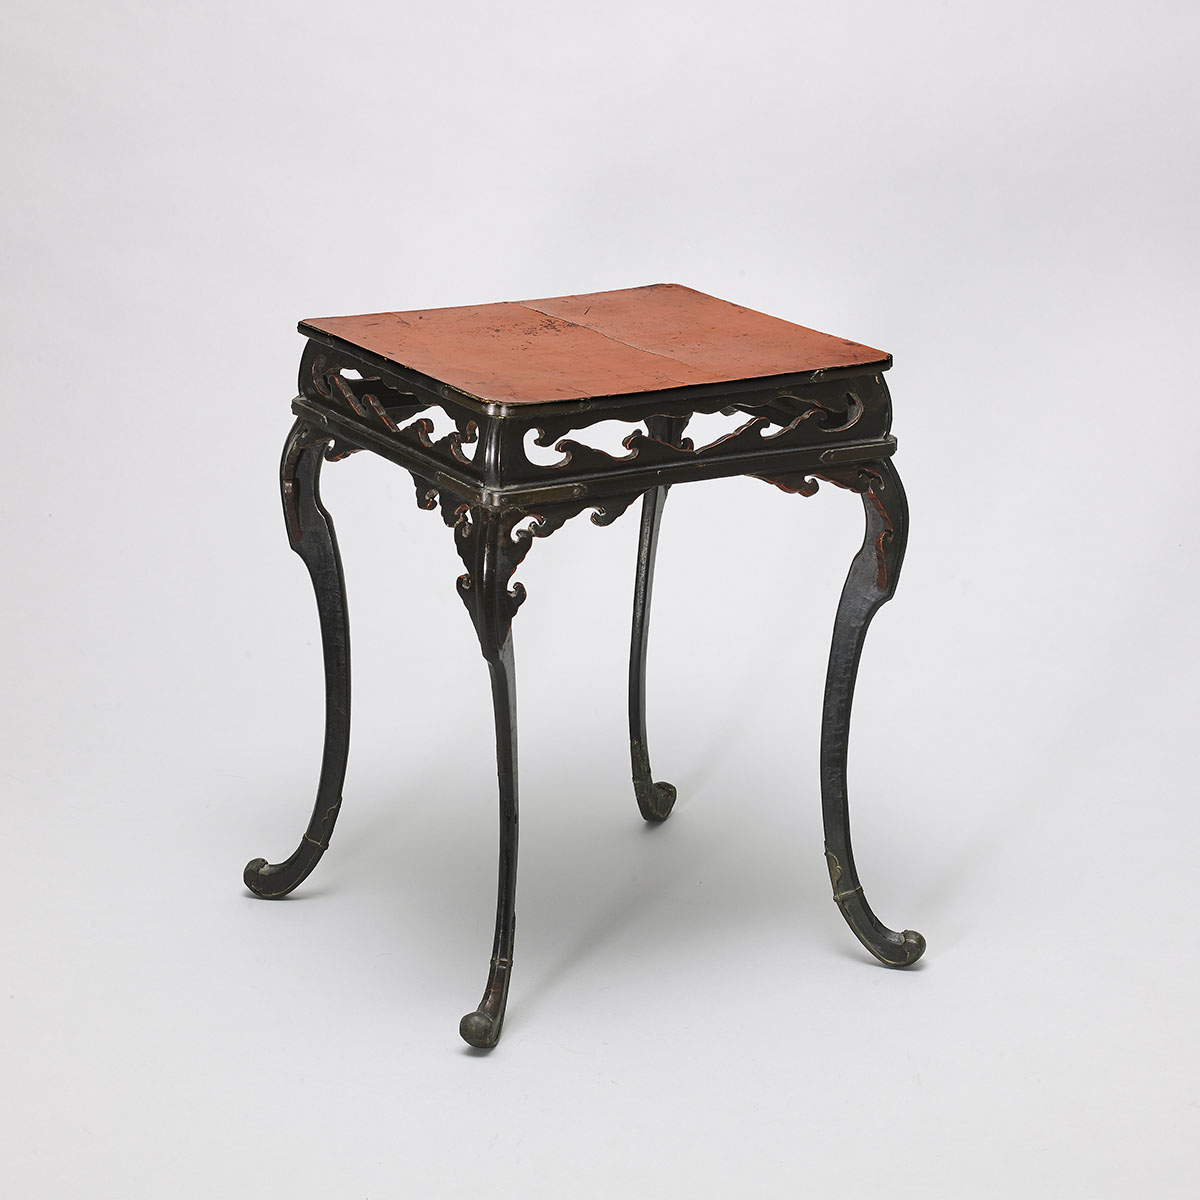 Early lacquered low table or stand, MR2531